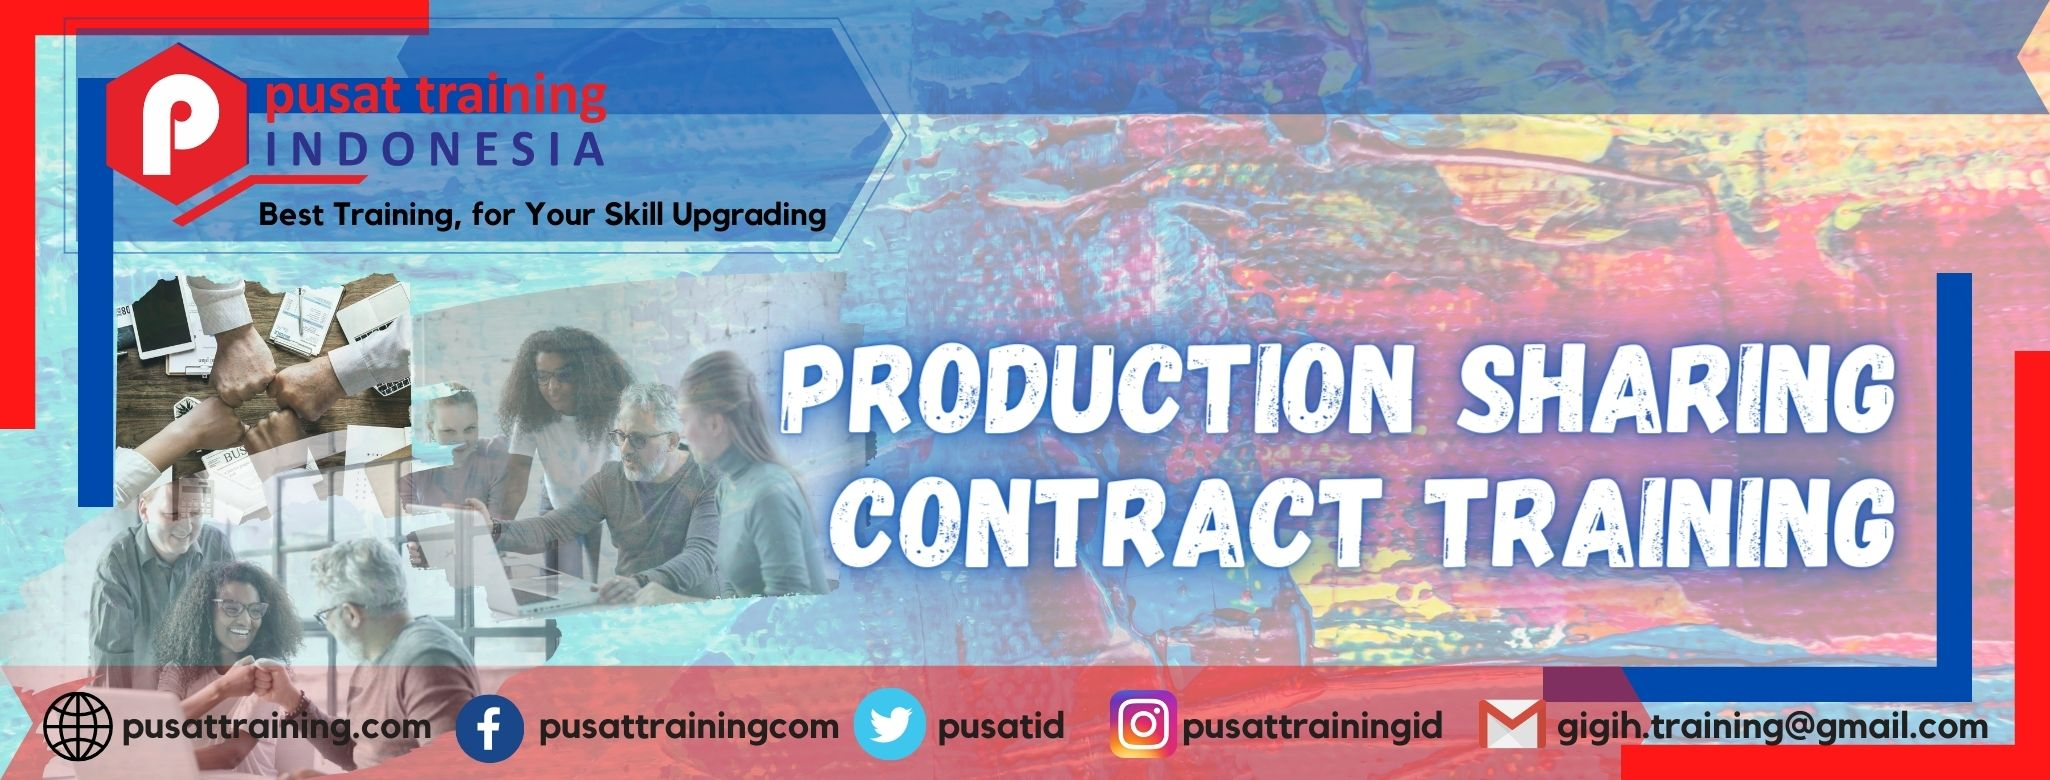 production-sharing-contract-training